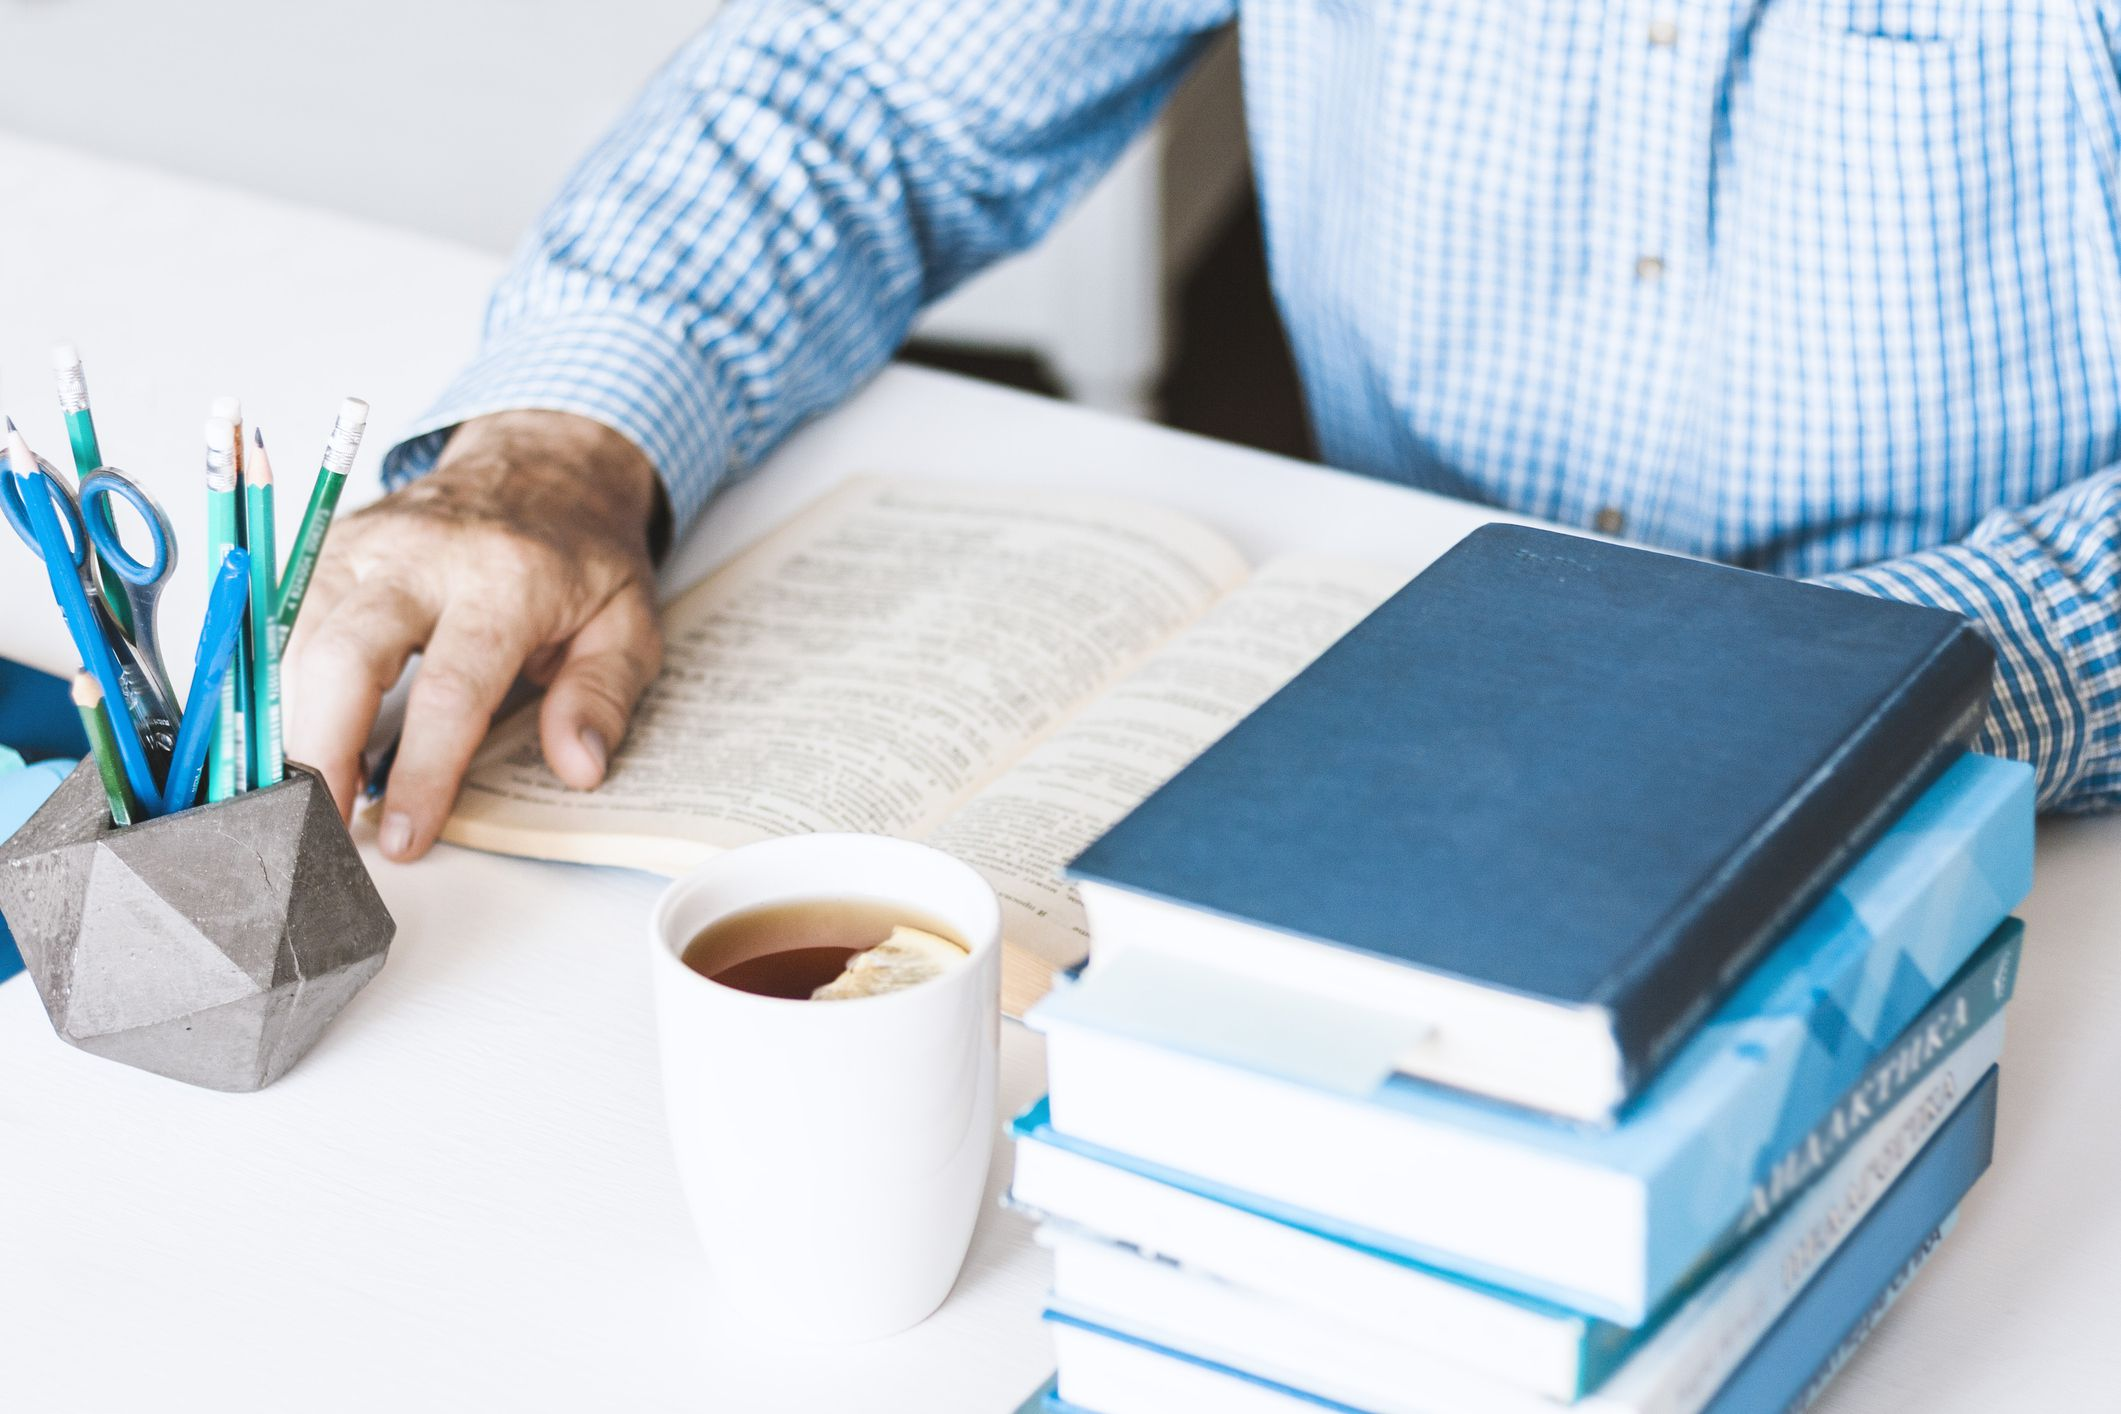 The 9 Best Investing Books for Beginners in 2021